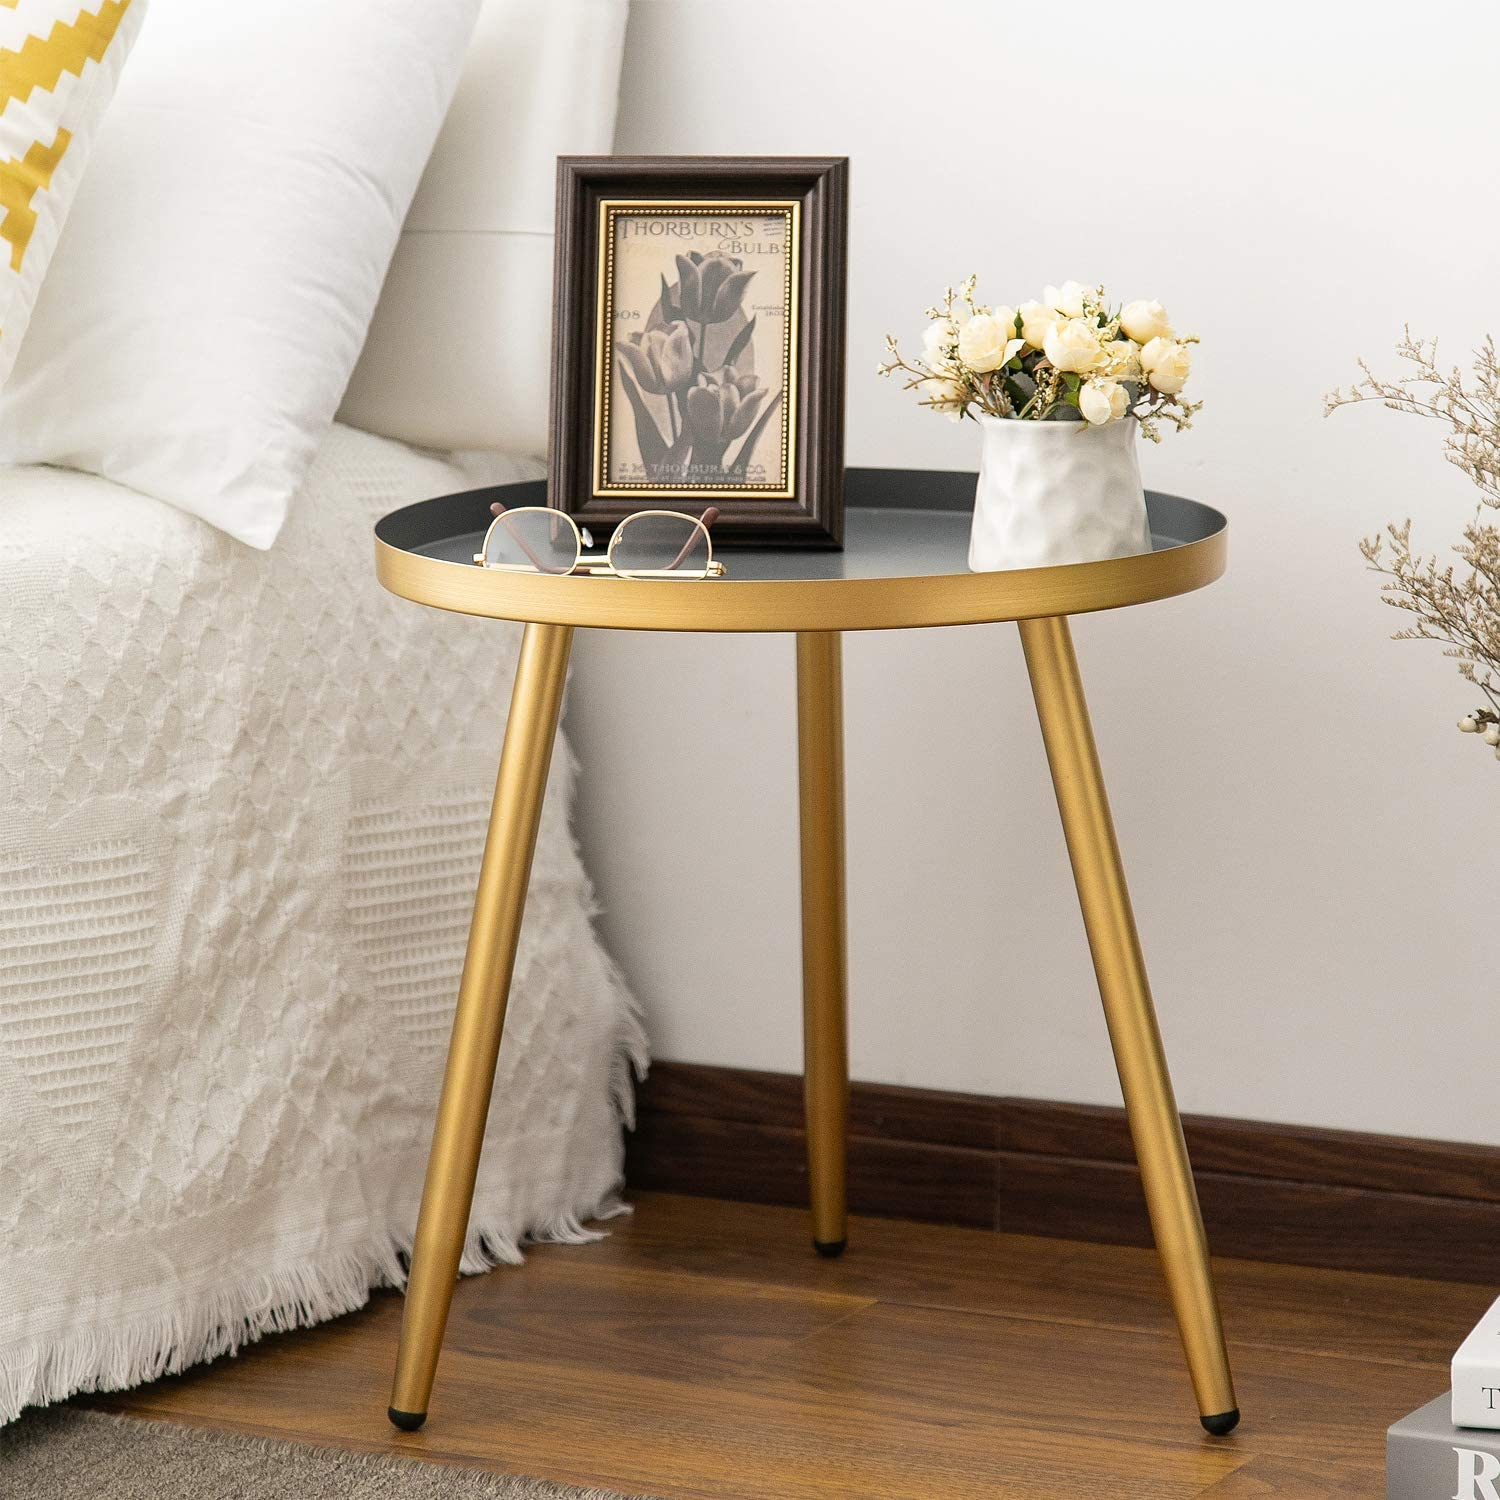 Amazon Com Round Side Table Metal End Table Nightstand Small Tables For Living Room Accent Tables Side Table For Small Spaces Gold Gray By Aojezor Kitchen Dining